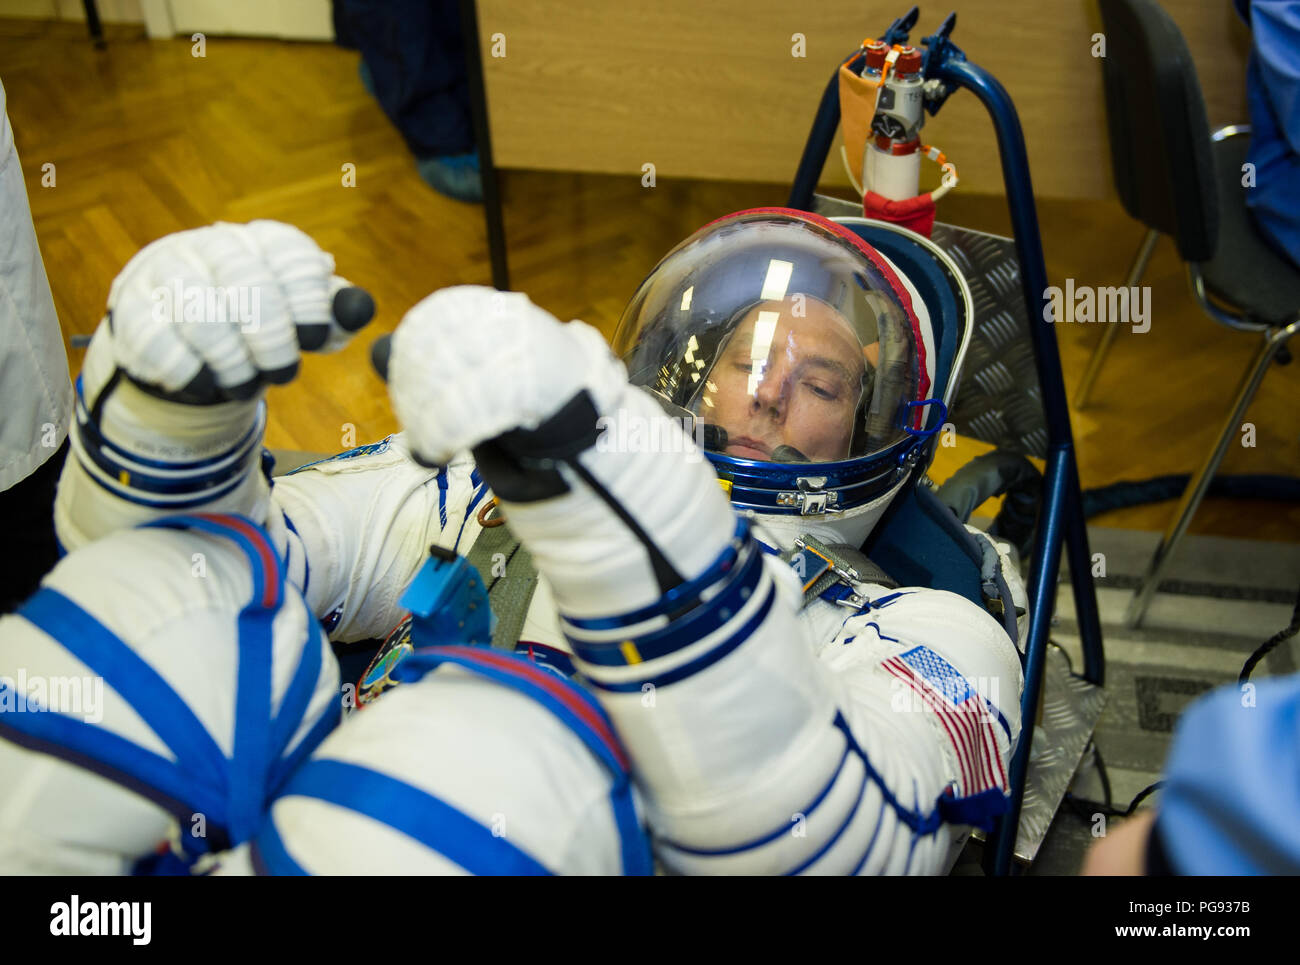 Expedition 55 flight engineer Drew Feustel of NASA has his Russian Sokol suit pressure checked in preparation for launch aboard the Soyuz MS-08 spacecraft, Wednesday, March 21, 2018 at the Baikonur Cosmodrome  Kazakhstan. Feustel, Soyuz Commander Oleg Artemyev of Roscosmos, and flight engineer Ricky Arnold of NASA launched aboard the Soyuz MS-08 spacecraft at 1:44 p.m. Eastern time (11:44 p.m. Baikonur time) on March 21 to begin their journey to the International Space Station. - Stock Image